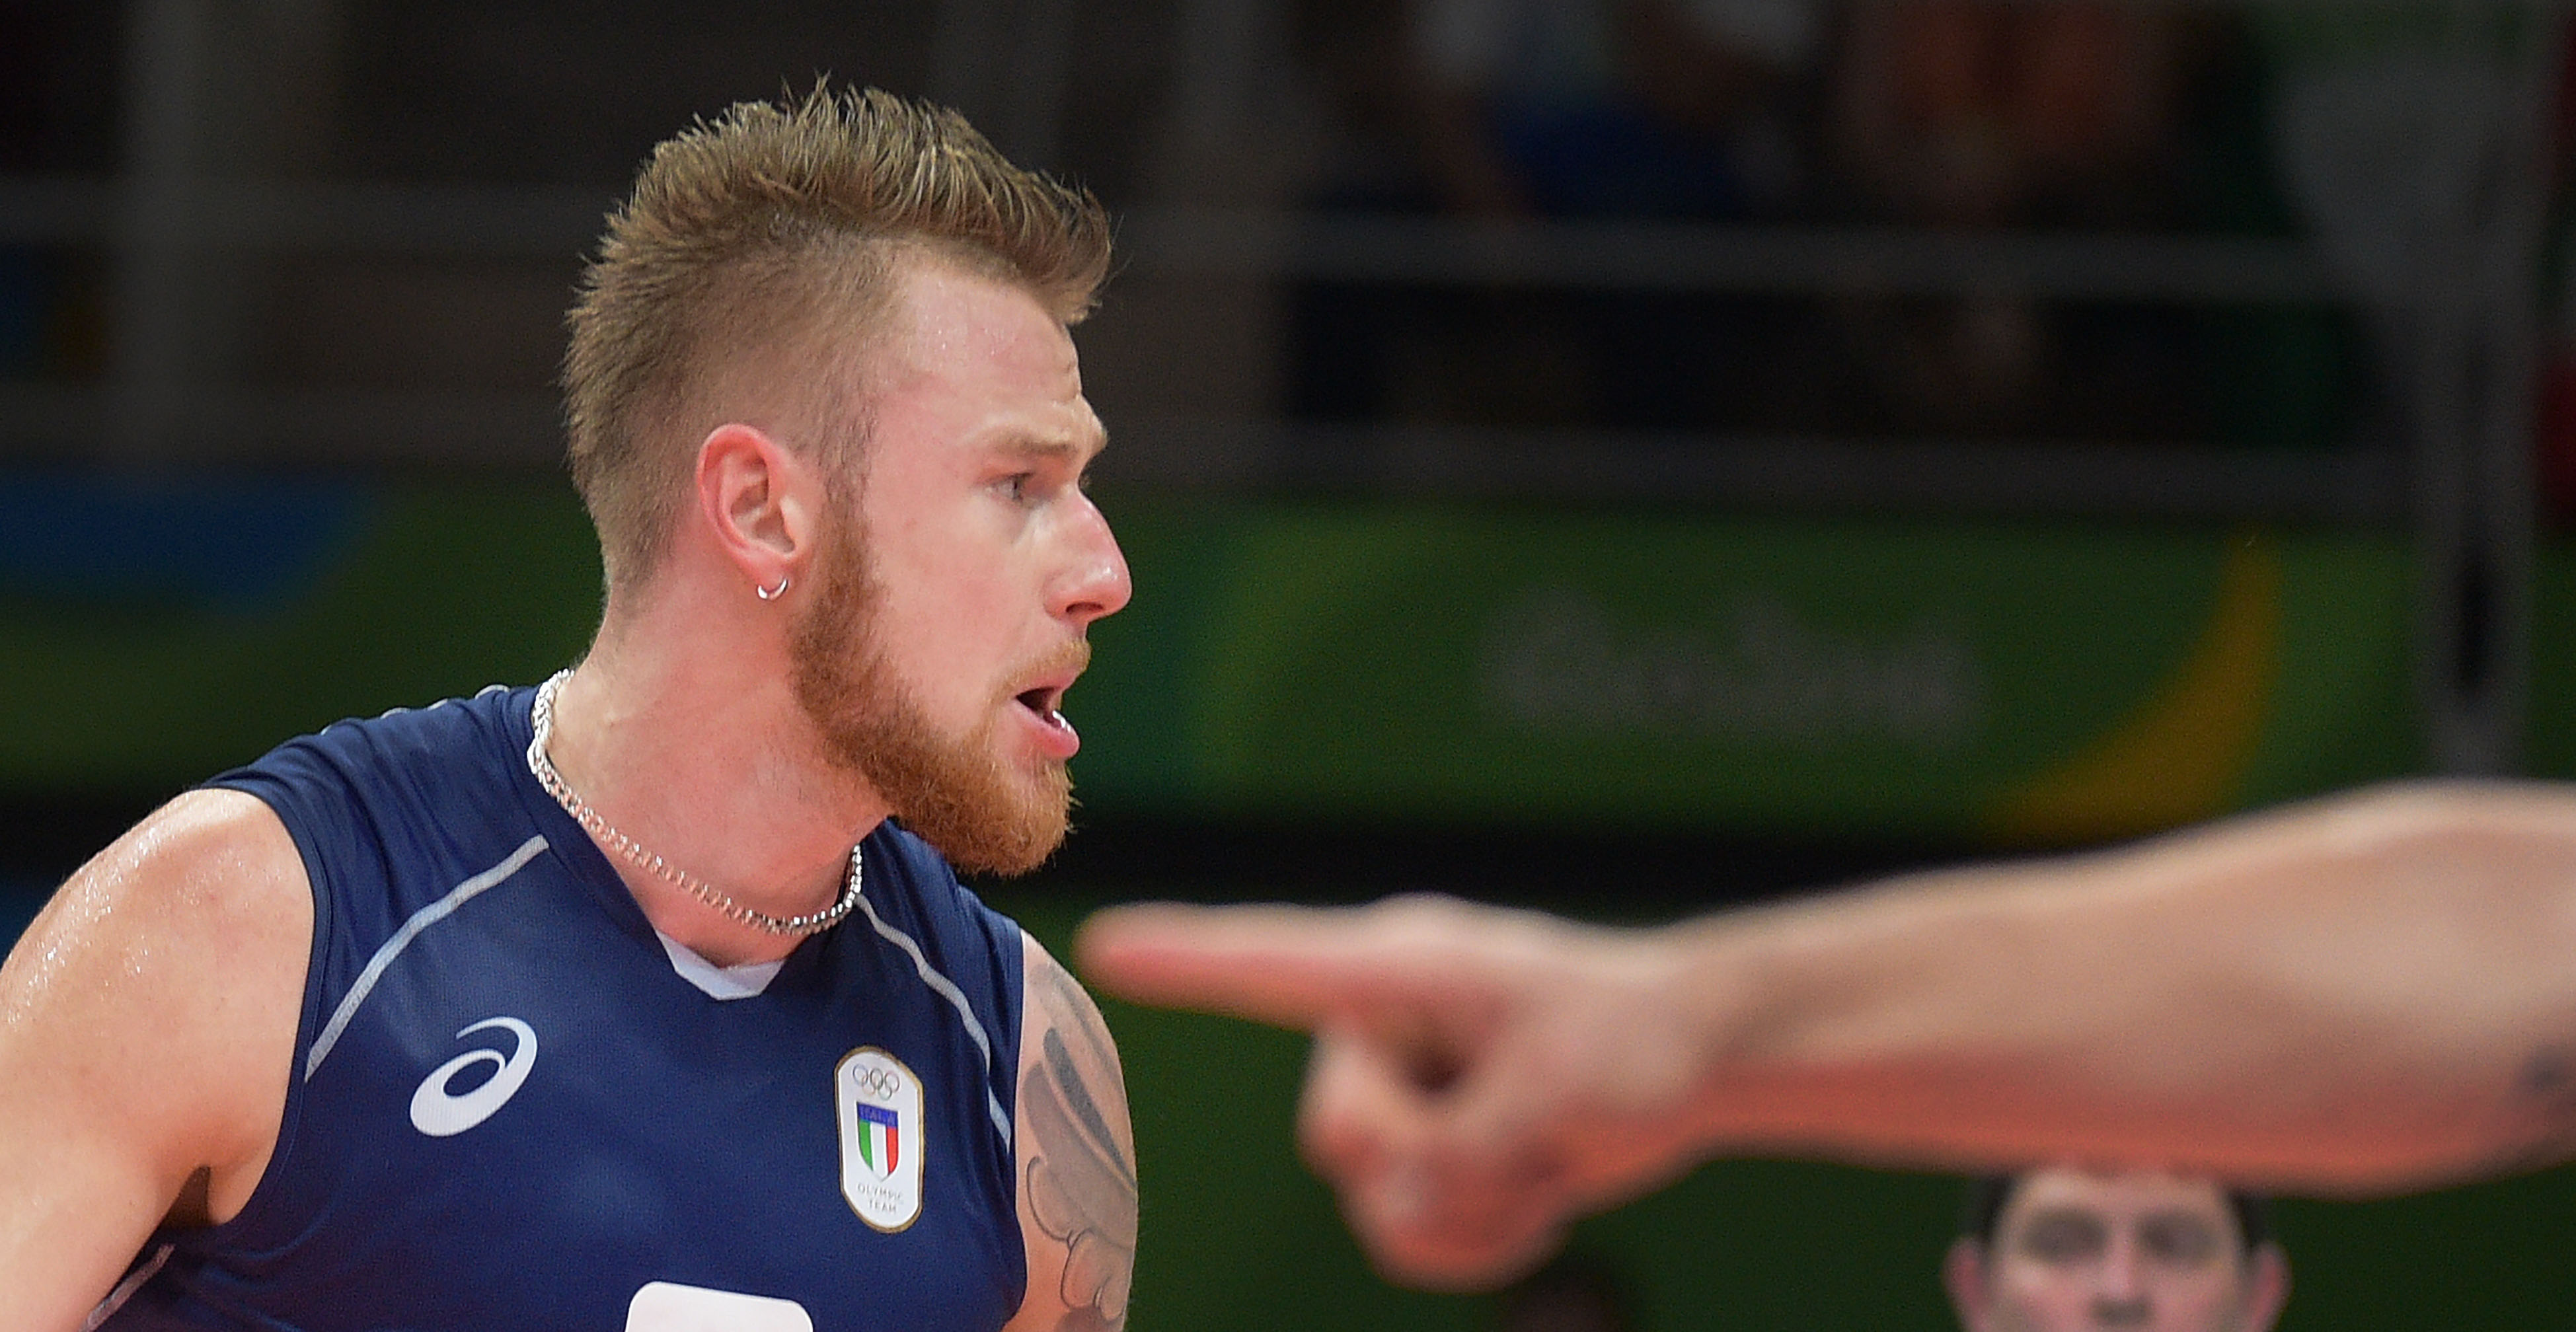 ivan zaytsev - photo #25